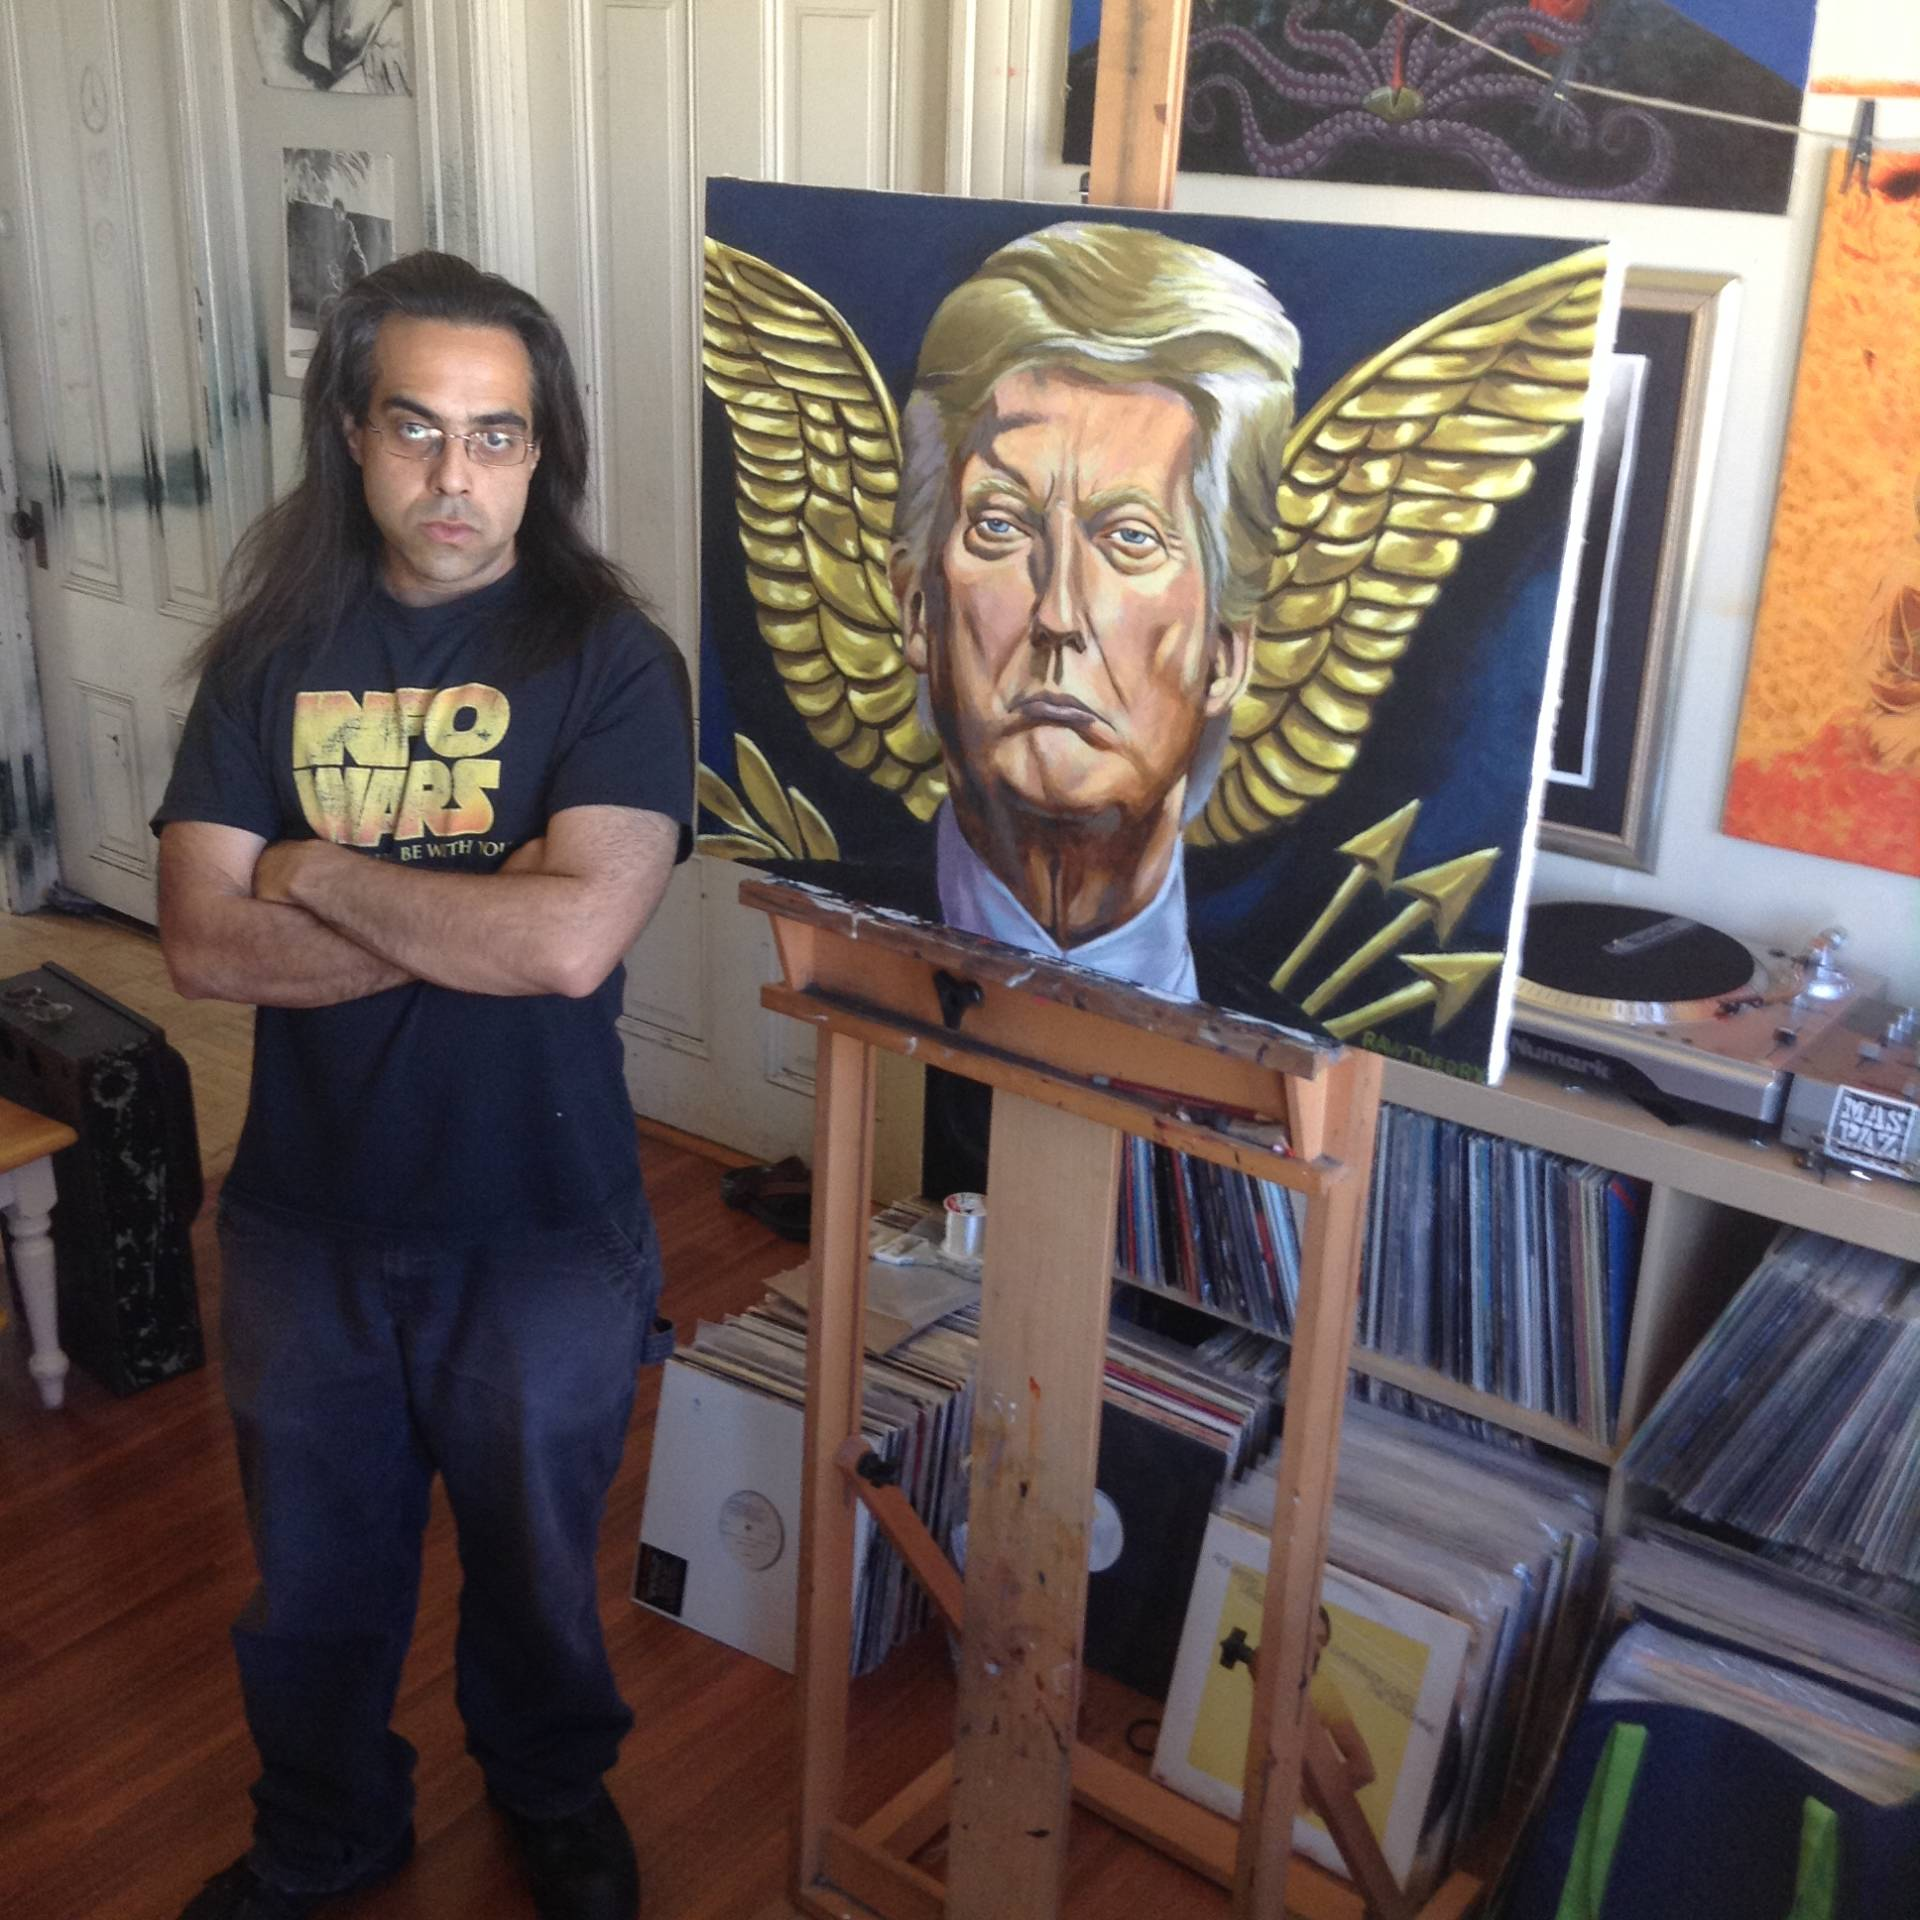 Oakland artist Jon Proby poses with his painting 'POTUS and me'.